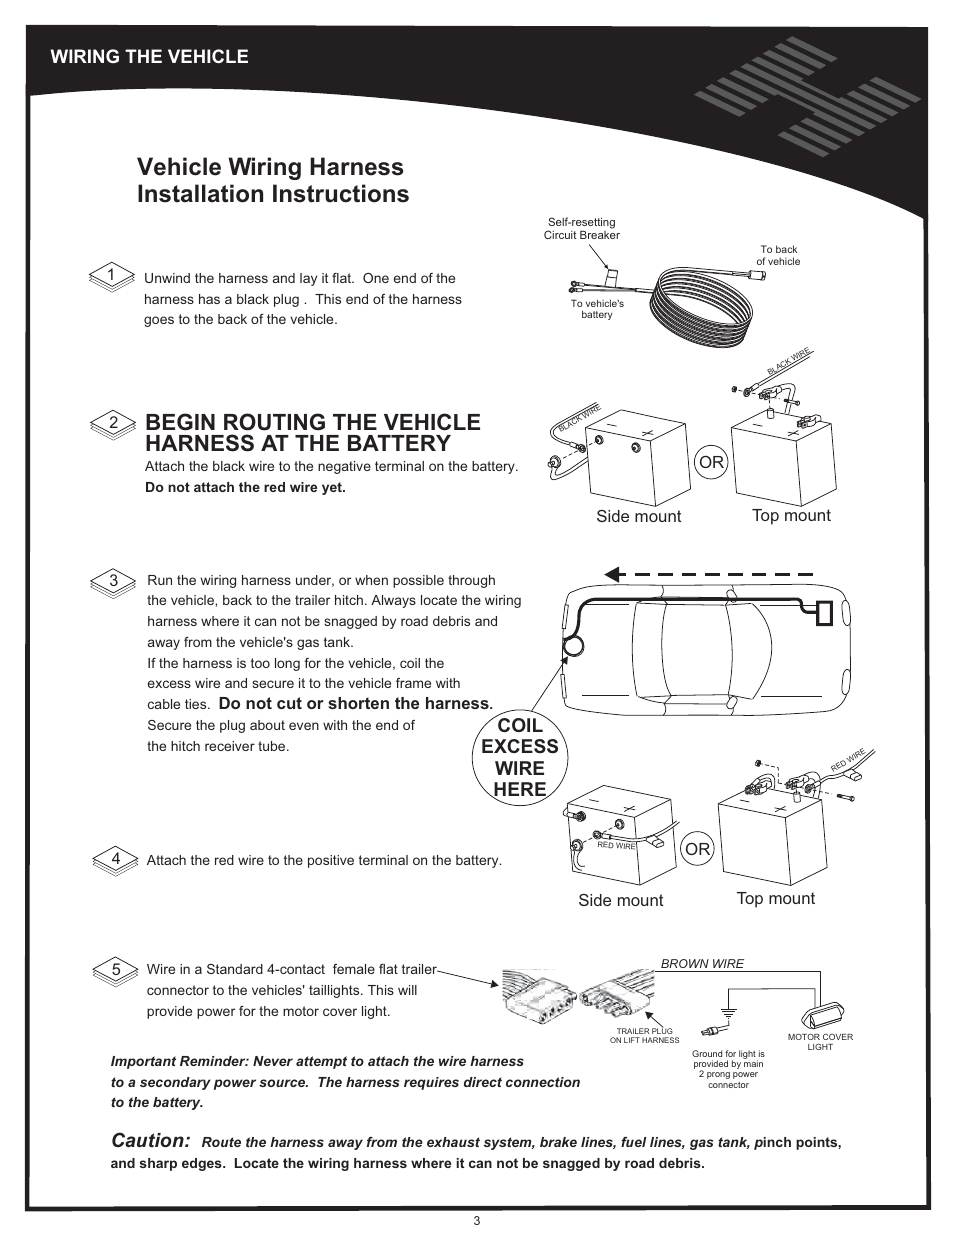 Throttle Body Wiring Harness Manual Guide